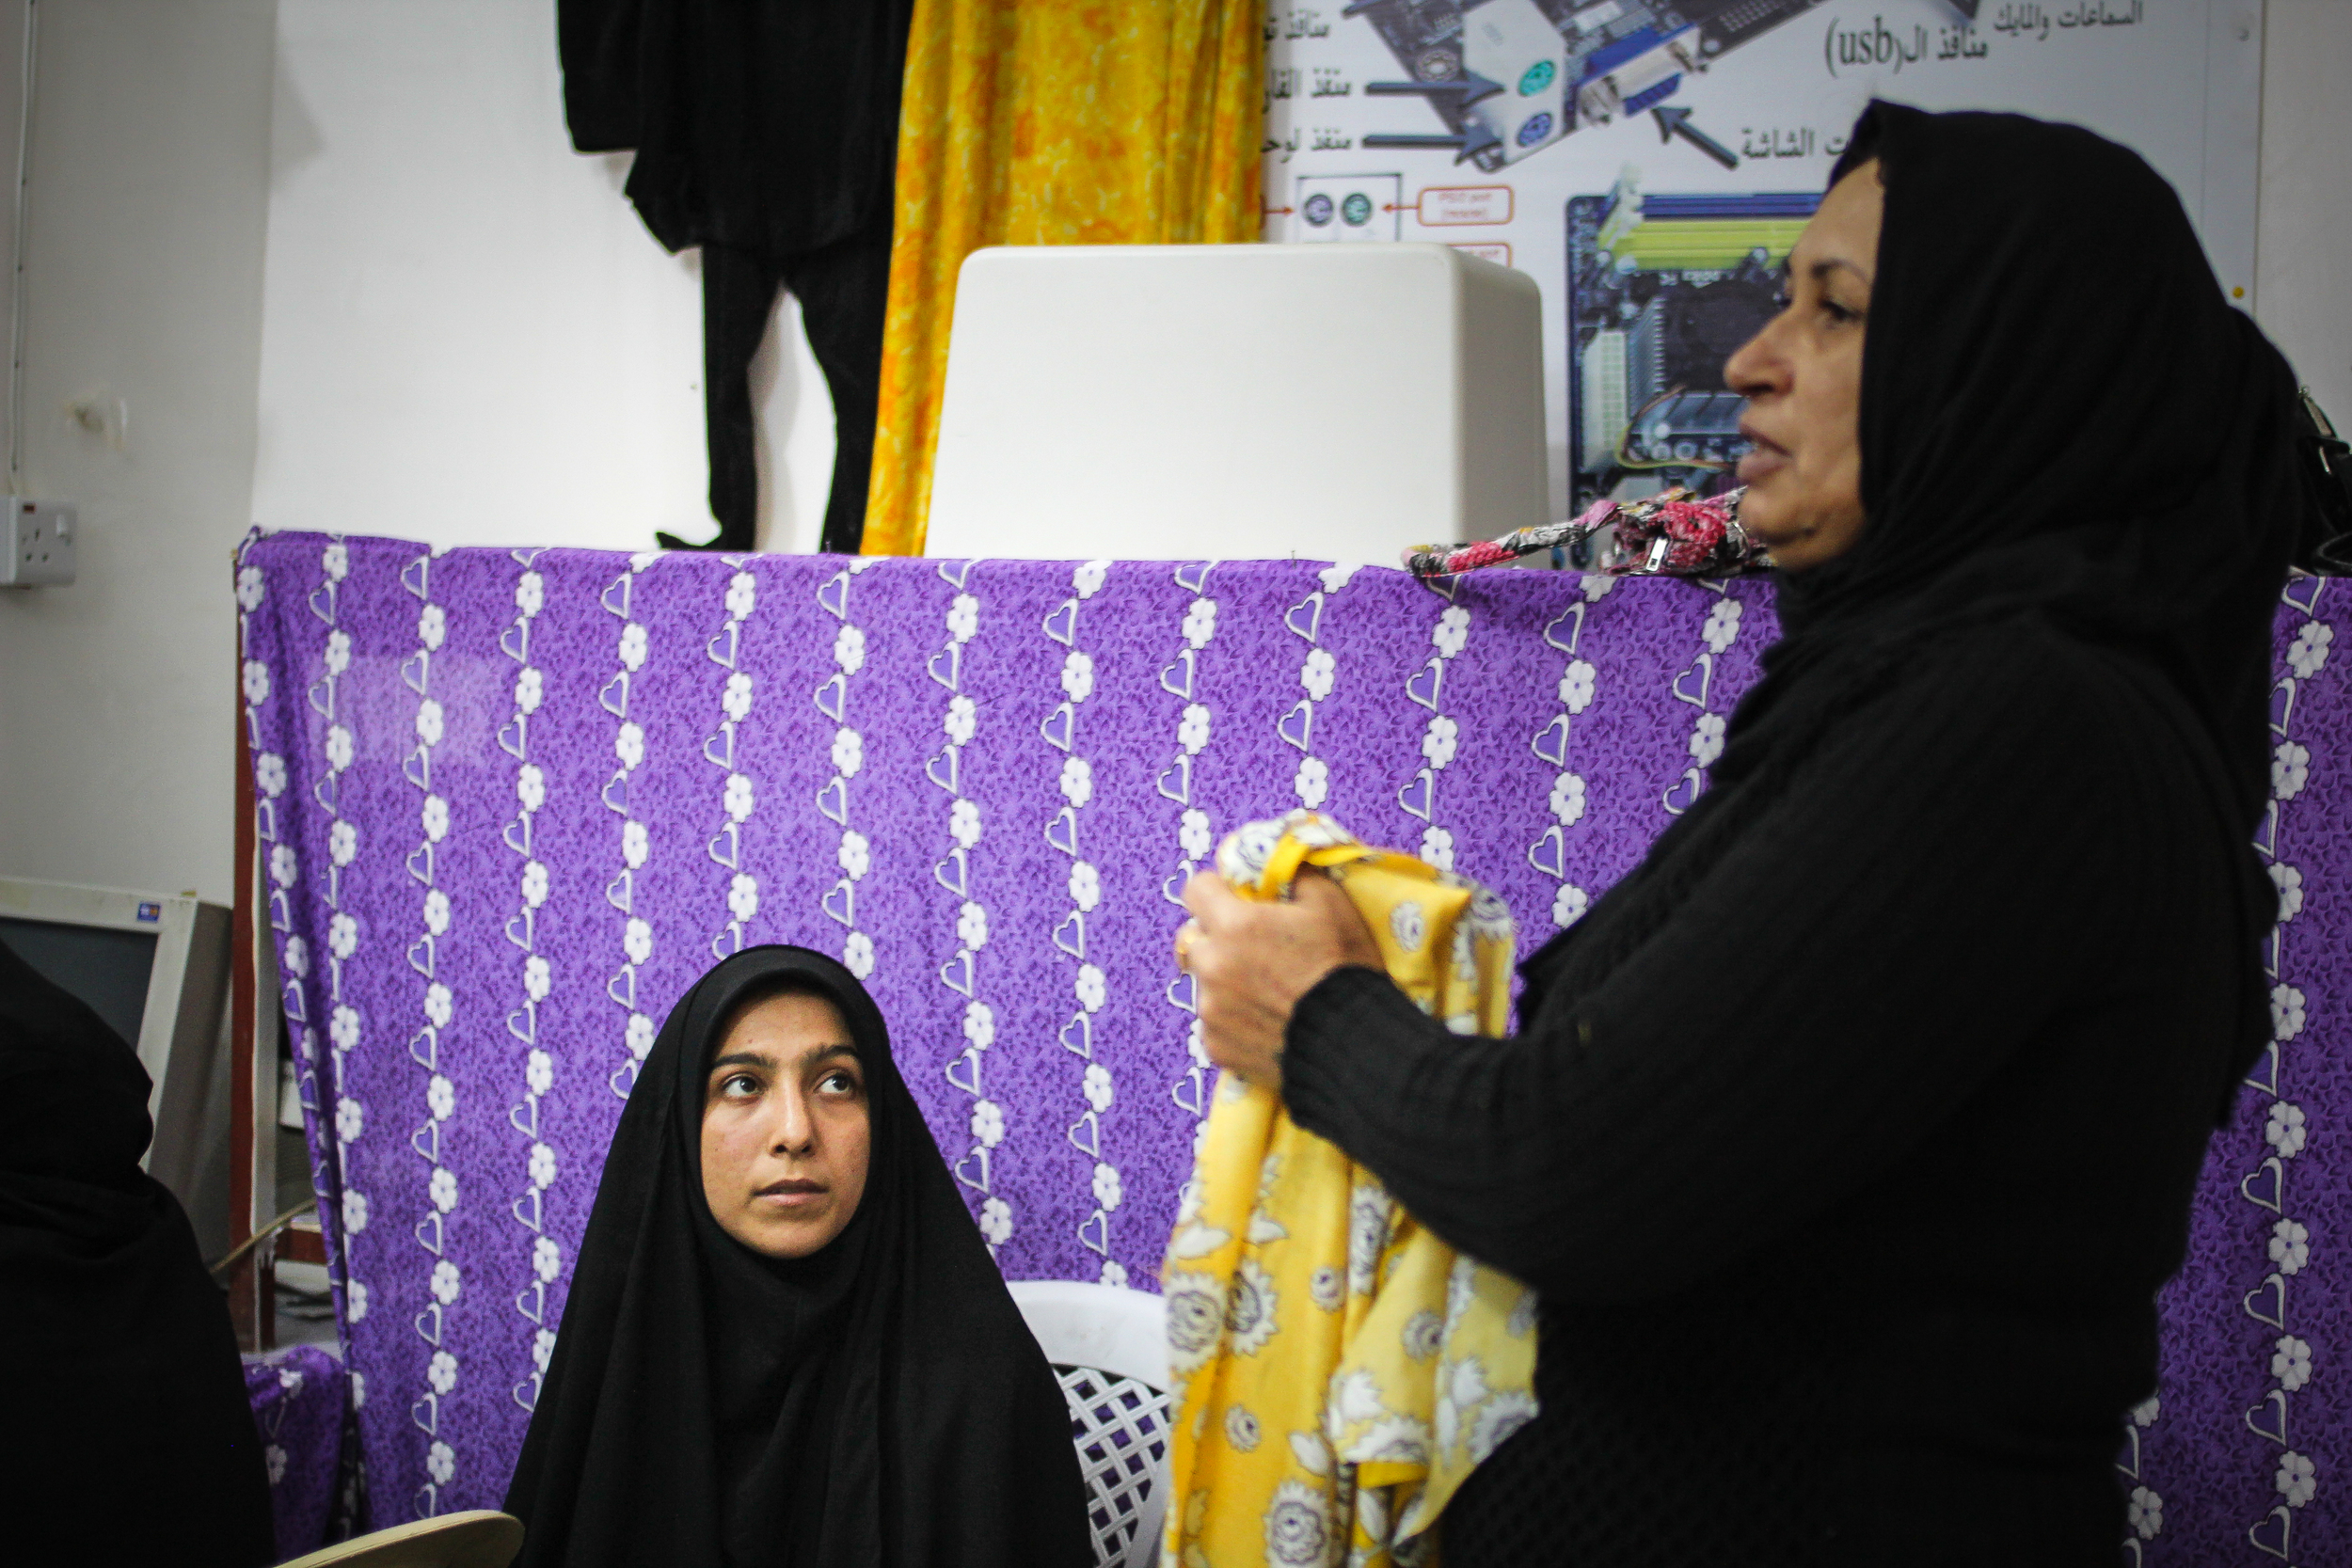 Sewing class, Baghdad / For the Iraq mission of the International Organization for Migration